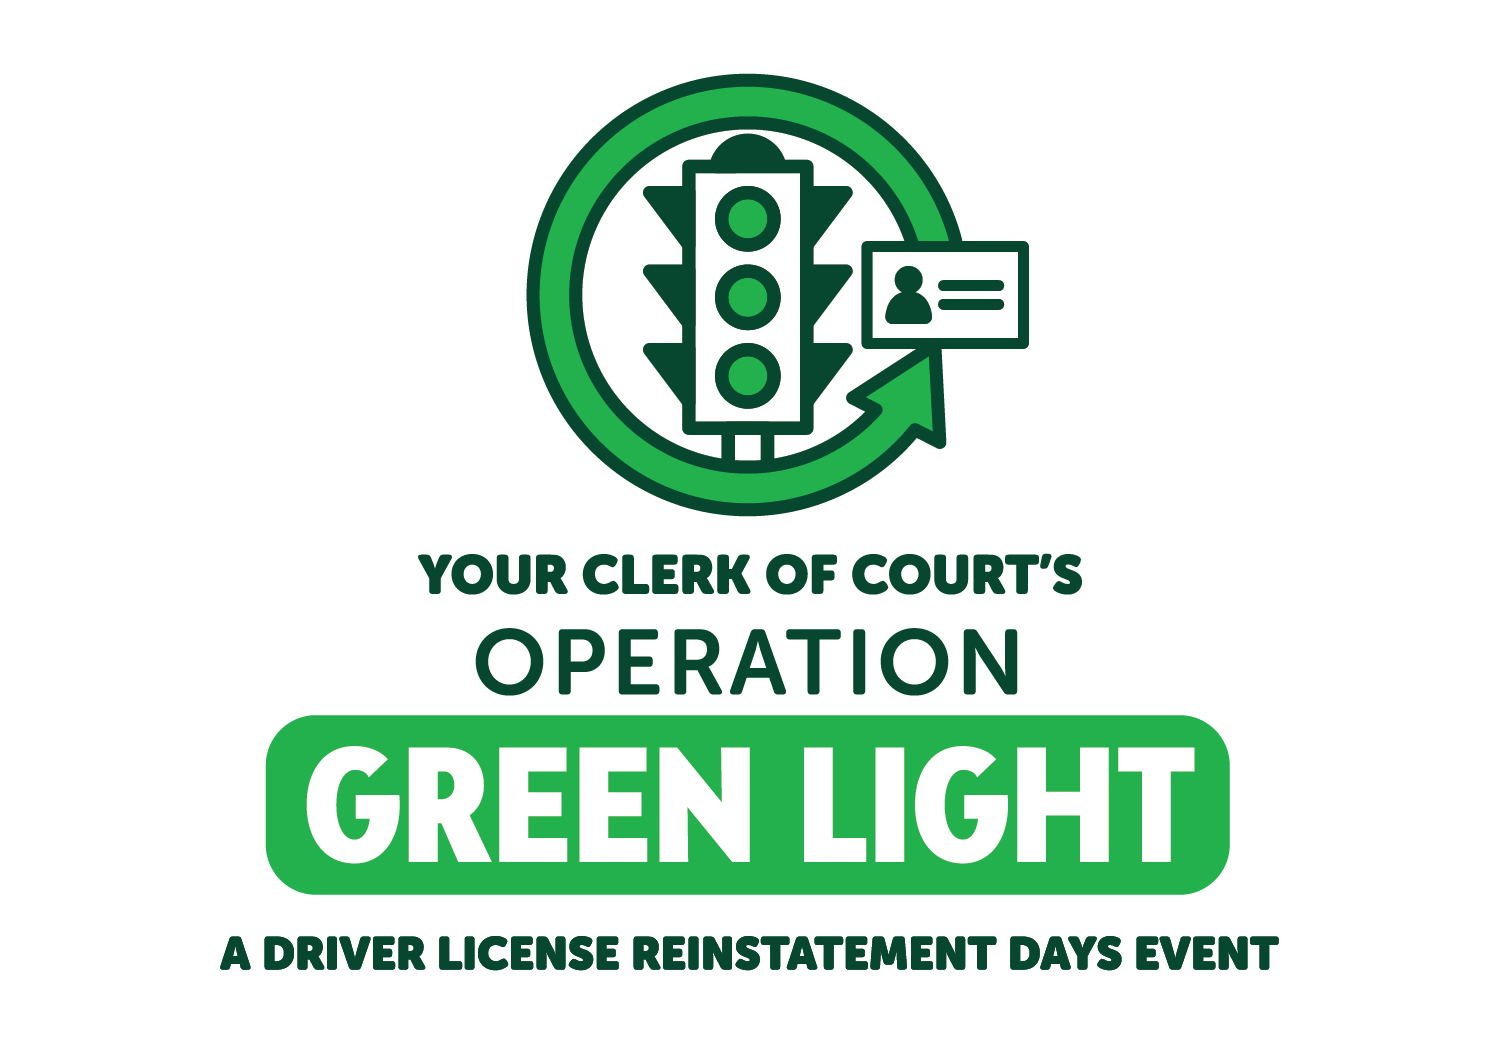 Suspended License? Save Money - Get Back on the Road. This is your chance to save on fees for overdue court obligations and get your license back.  